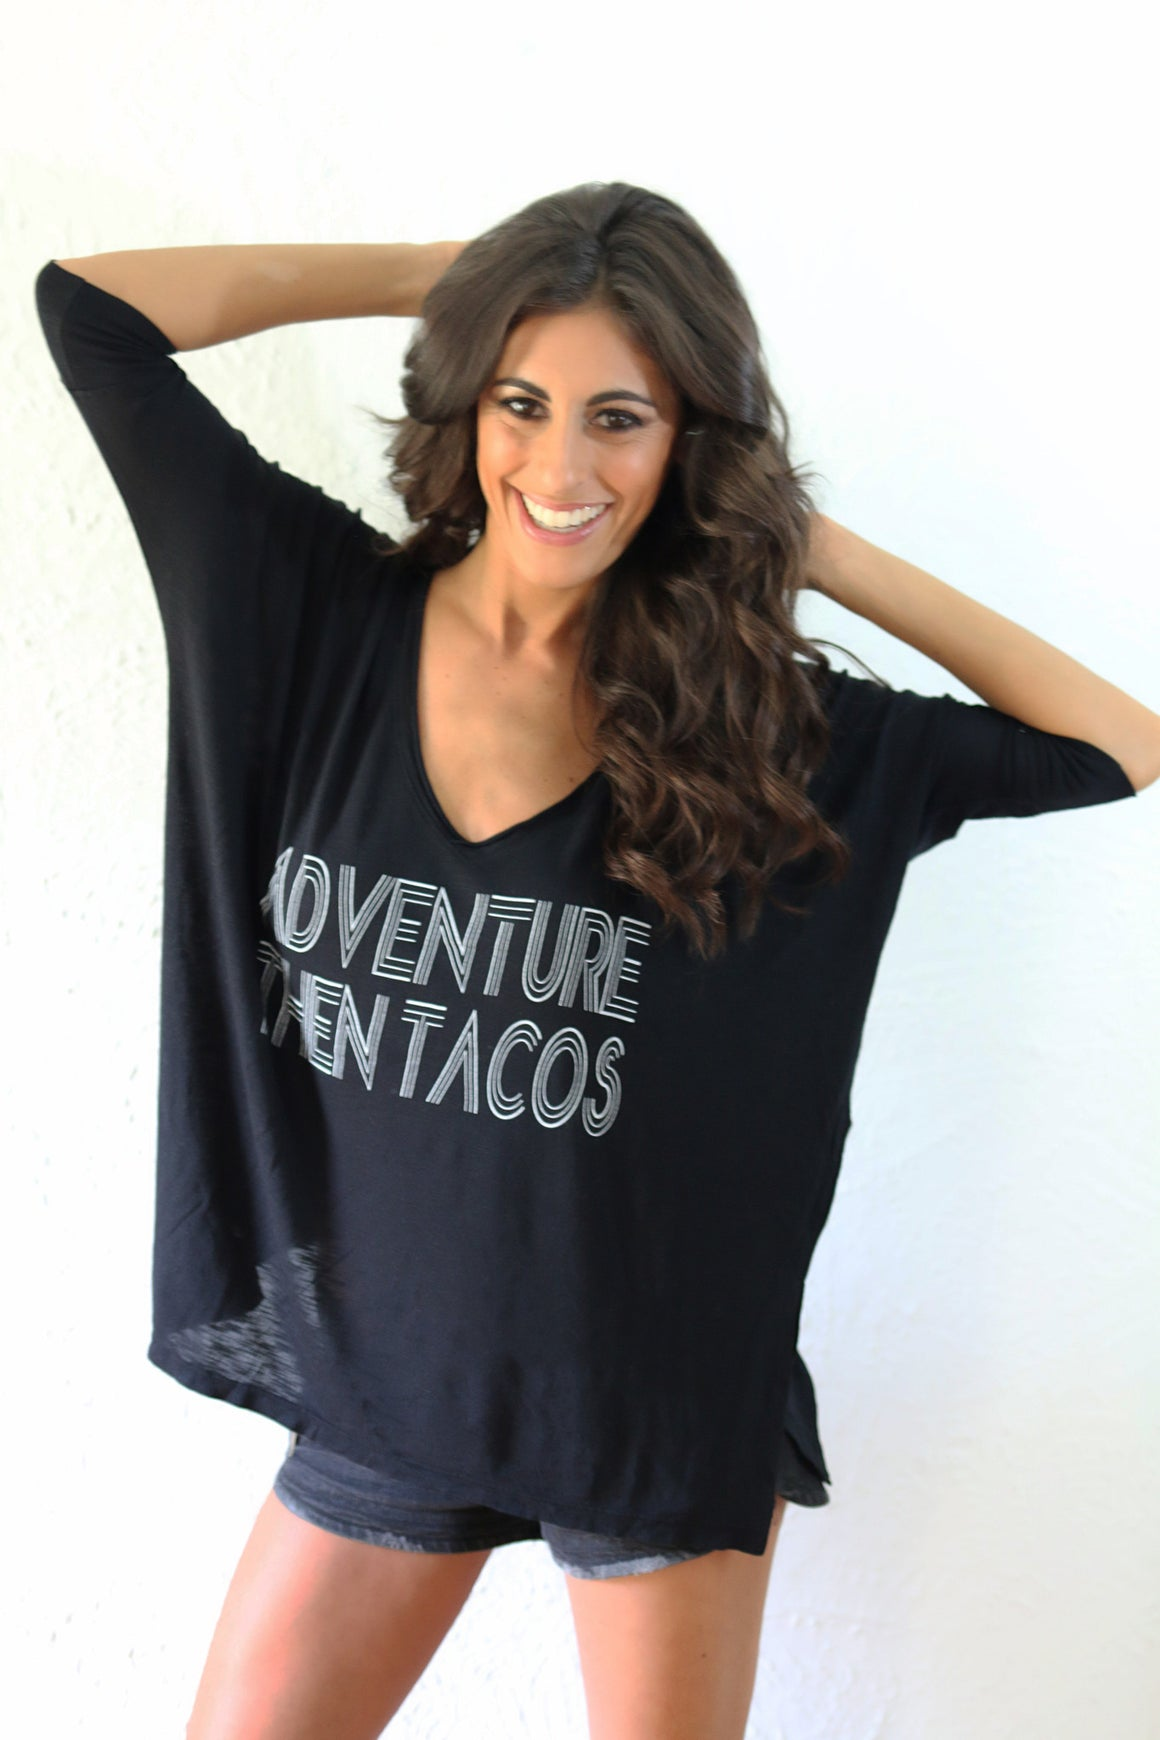 'Adventure then Tacos' Gracie Tee